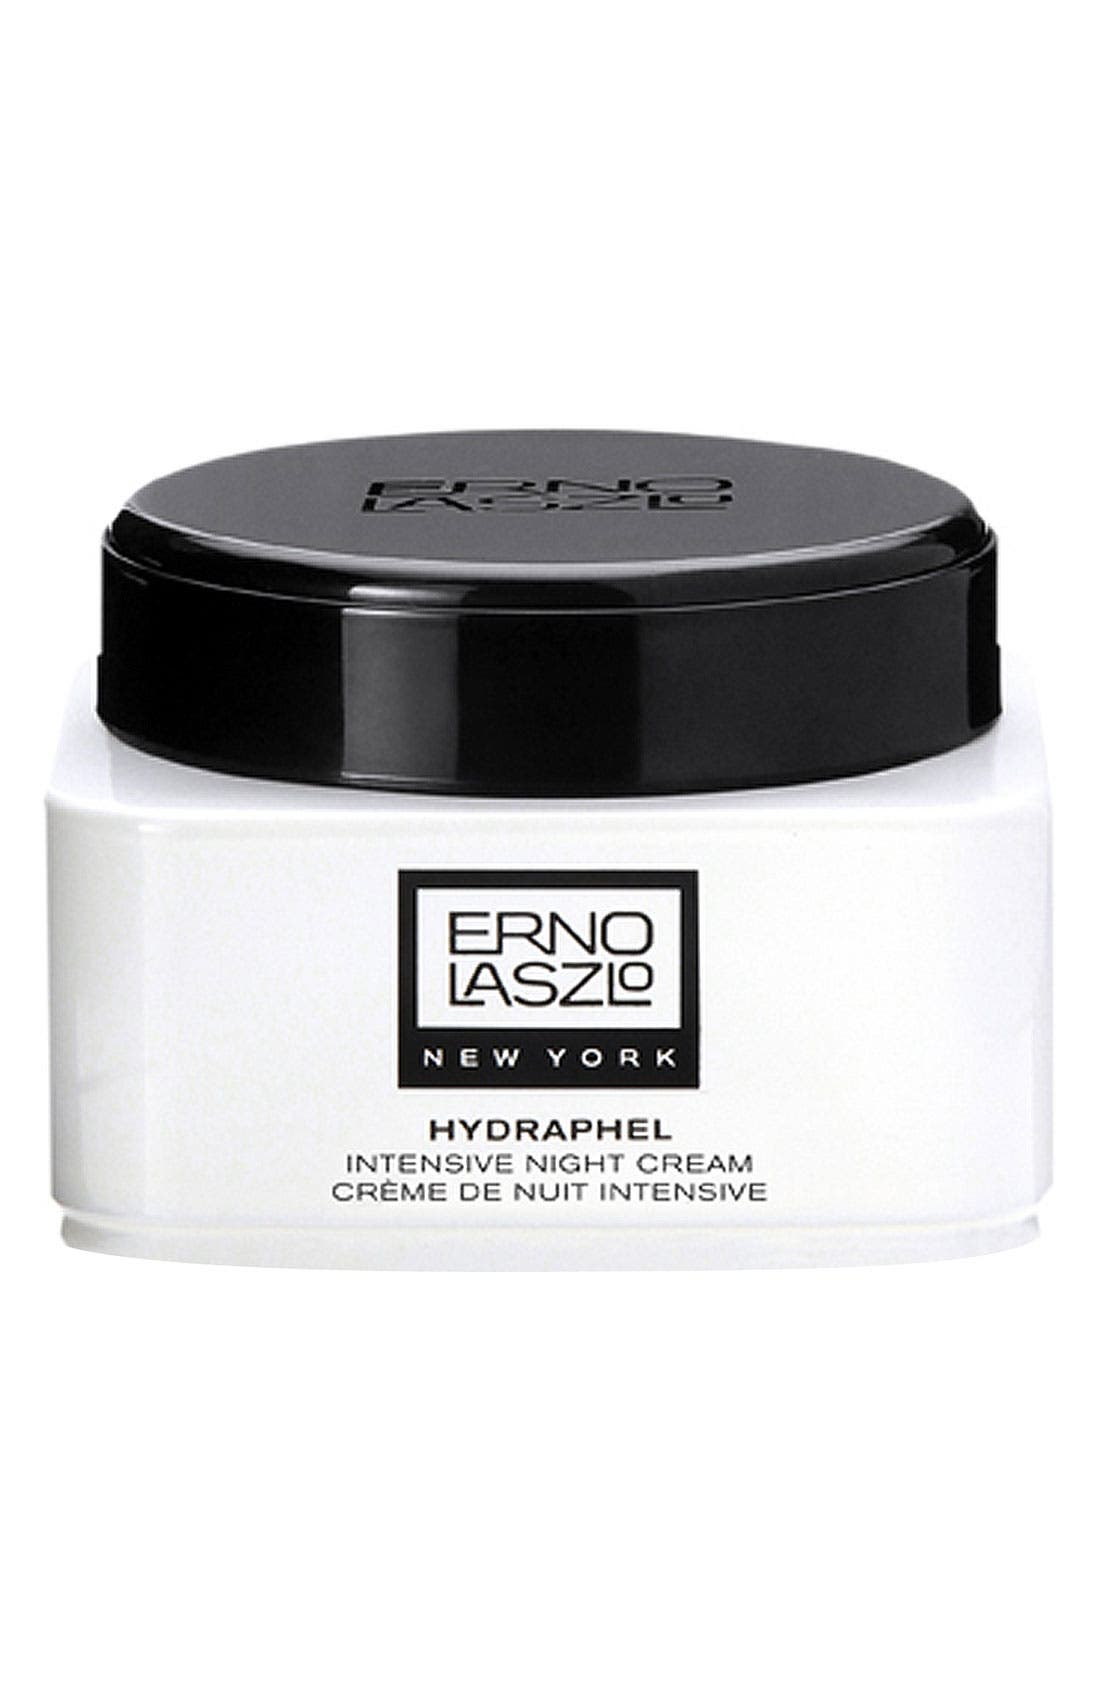 Erno Laszlo 'Hydraphel' Intensive Night Cream